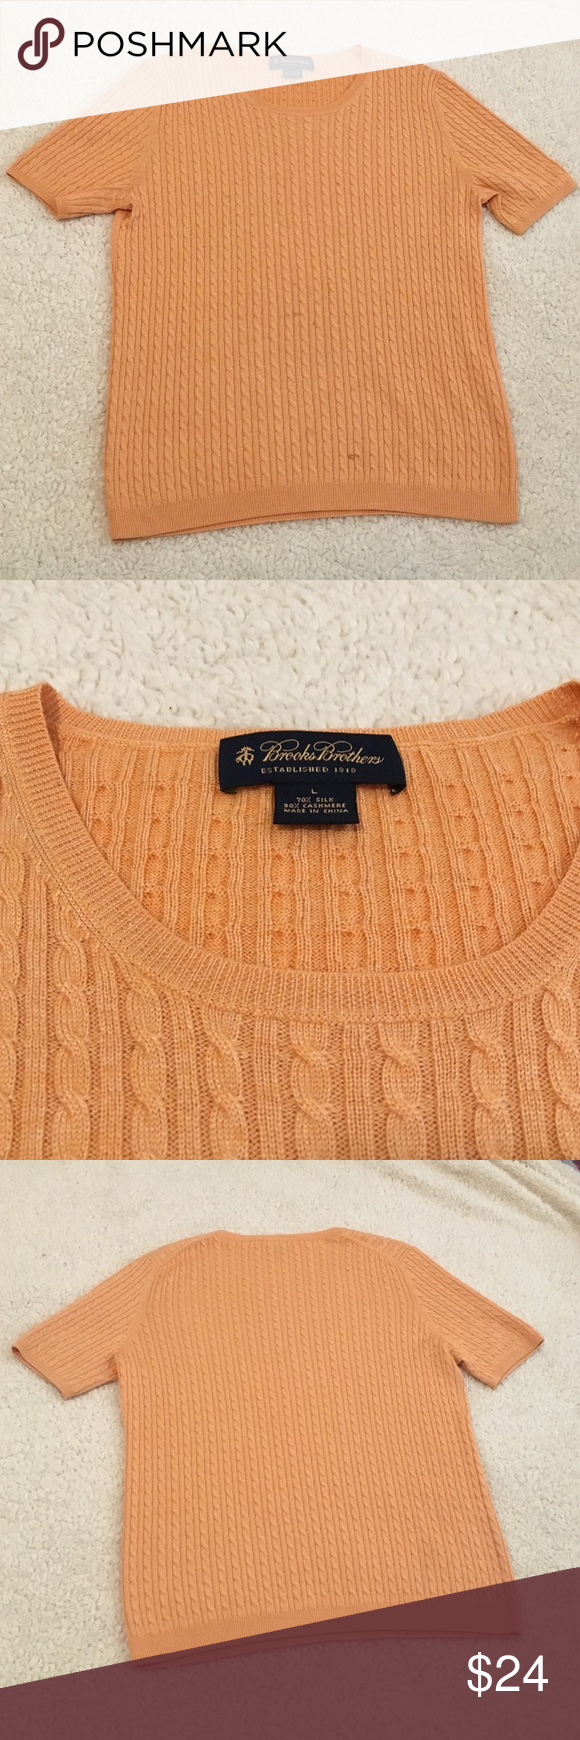 BROOKS BROTHERS CASHMERE Condition is 9/10 only has one stain easily removable size large , 70 % silk 30% cashmere make me an offer color is light pink with a Lil orange Brooks Brothers Tops